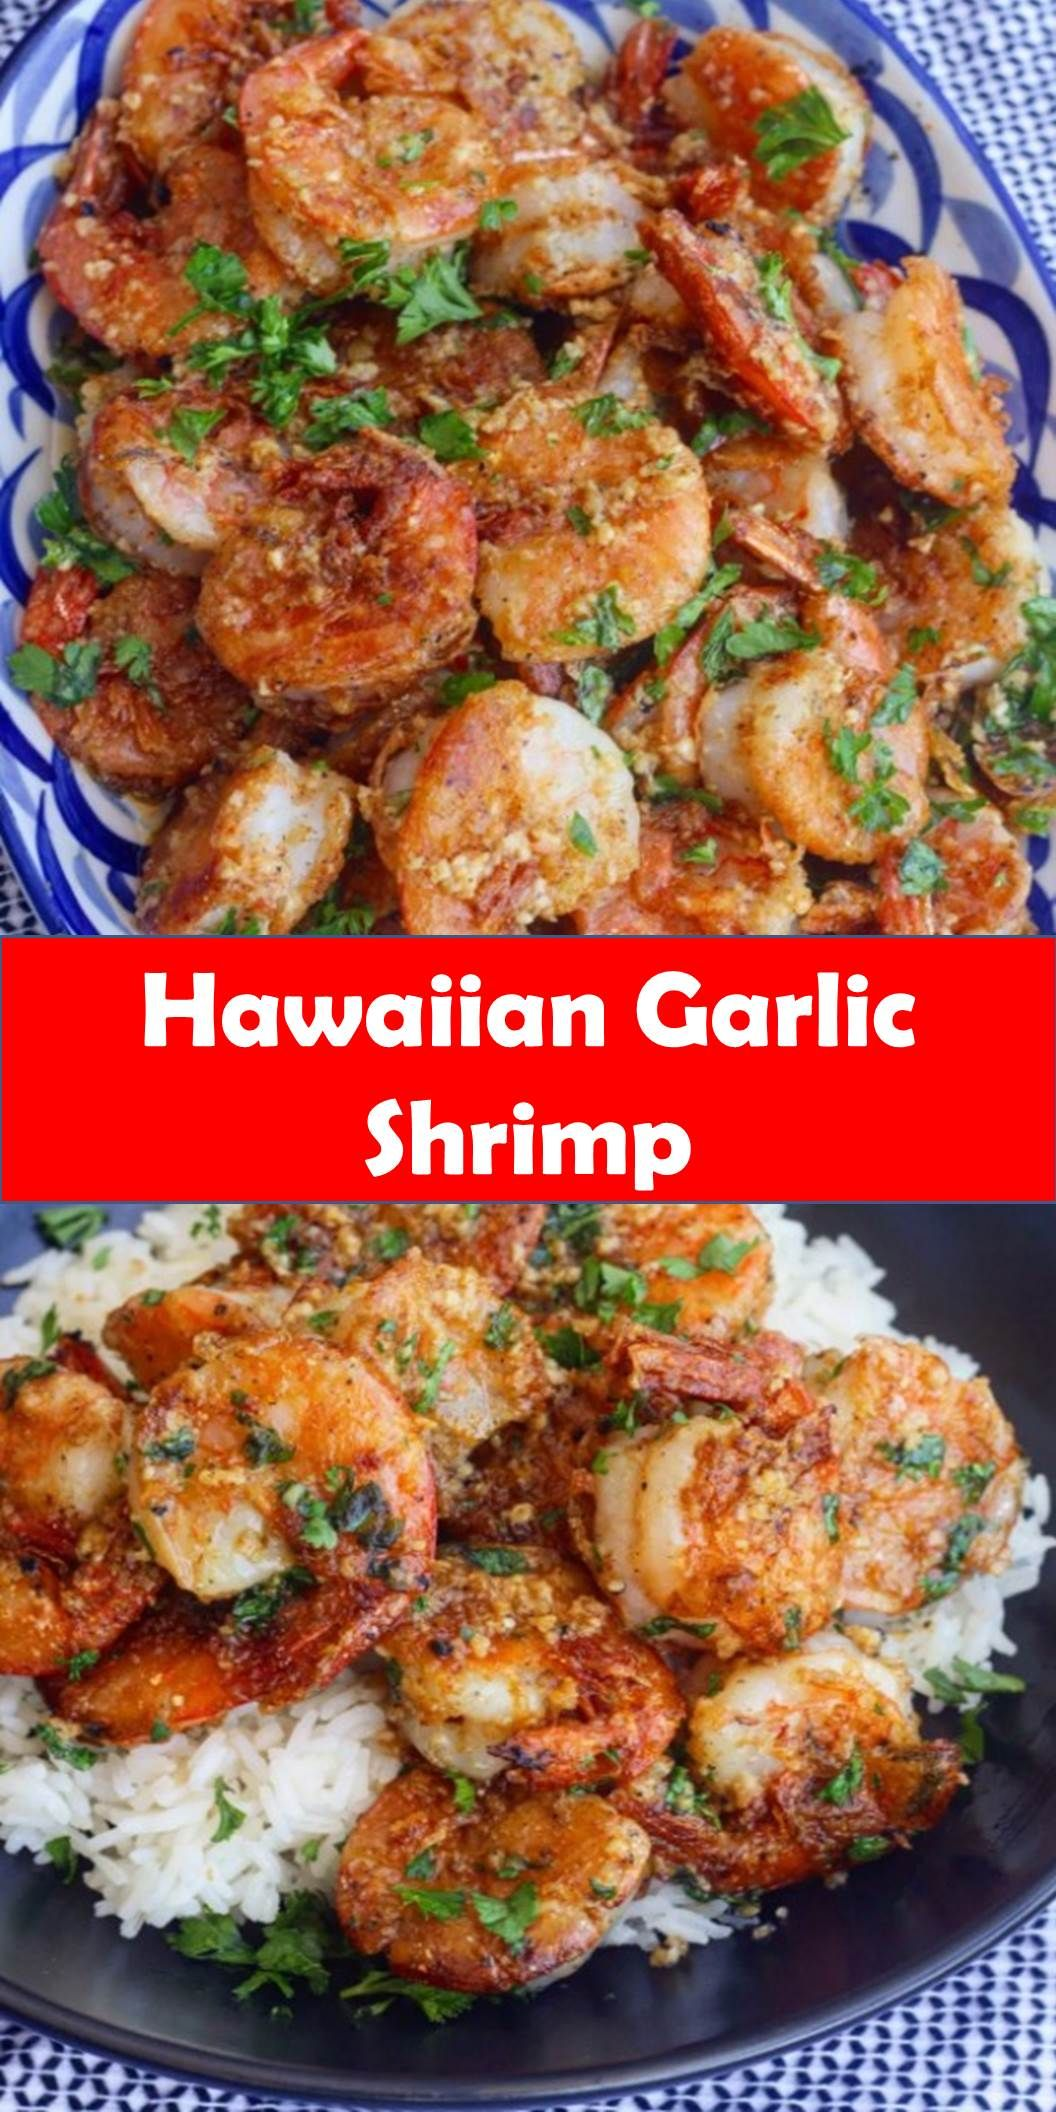 #Yummy #Hawaiian #Garlic #Shrimp Your family's favorite food and drink ! Hawaiian Garlic Shrimp Juicy prawns cooked in a garlicky buttery sauce, this Hawaiian Garlic Shrimp is just like the shrimp trucks you'd find in Hawaii. #Best #Vegas #Recipe! #BestVegasRecipe!